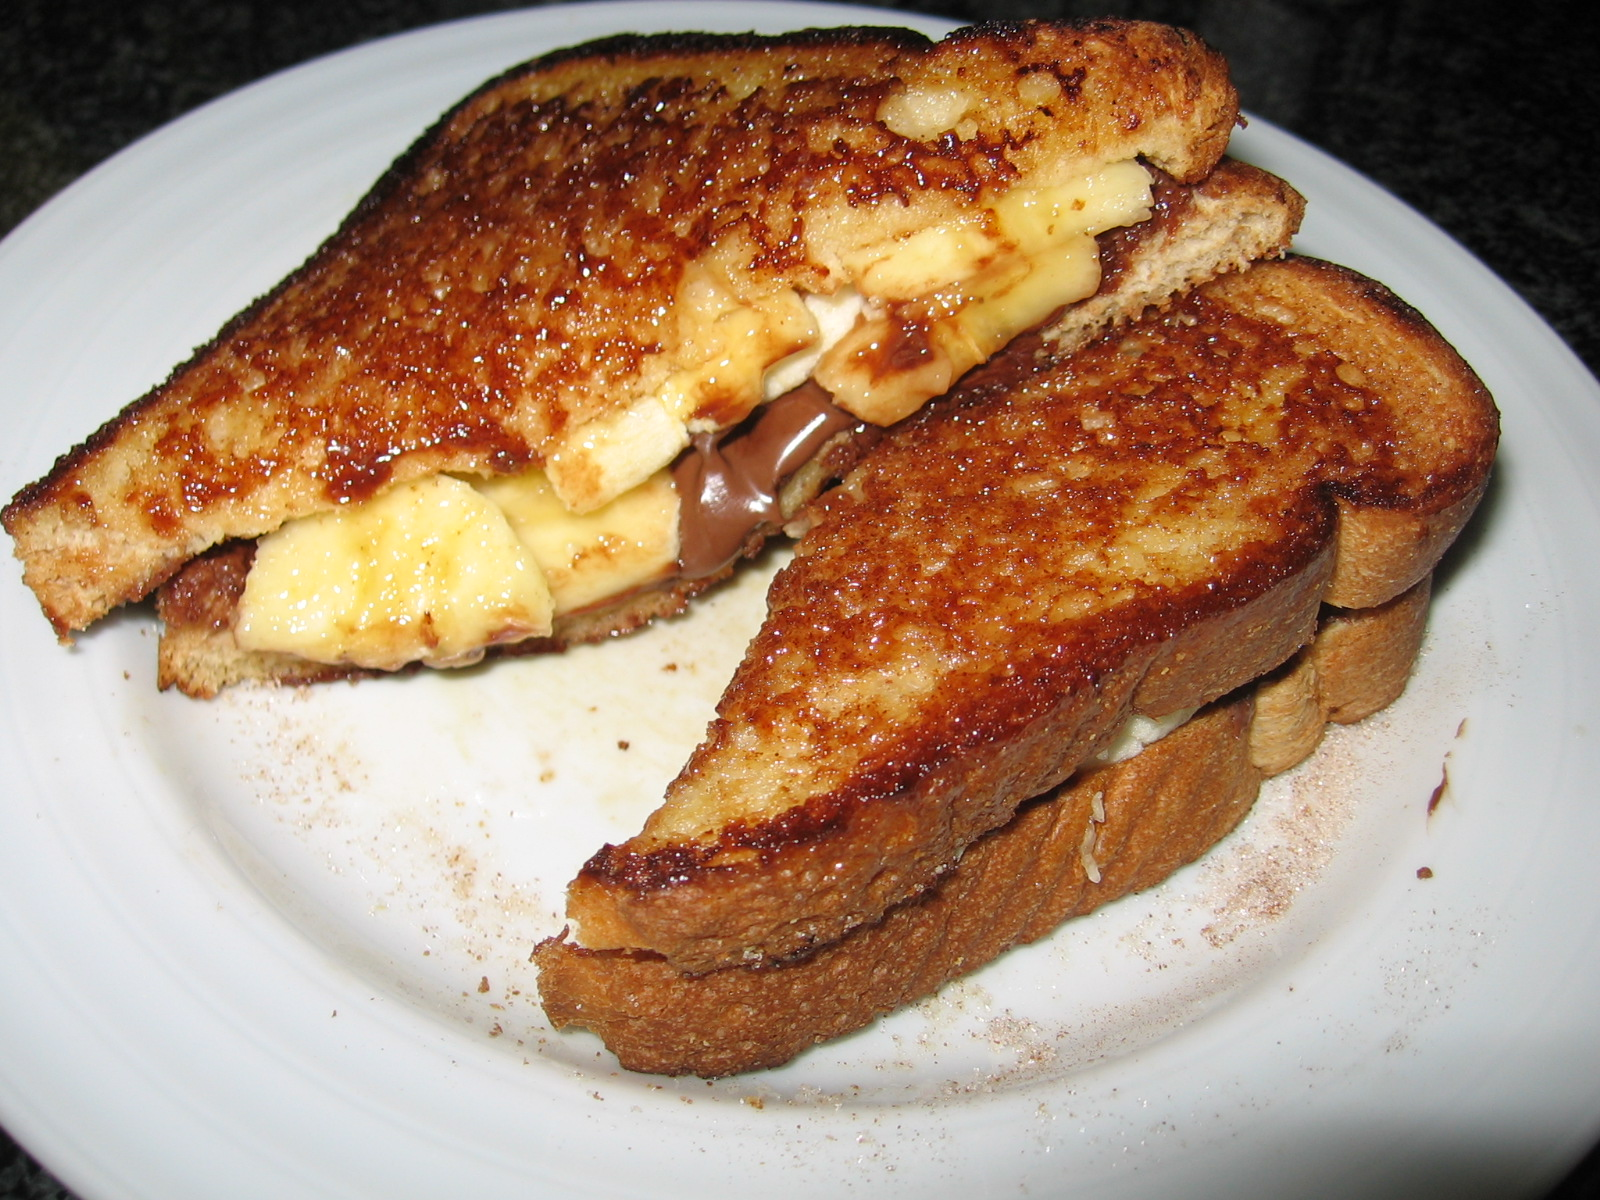 pudding nutella banana marshmallow creme panino roasted banana nutella ...